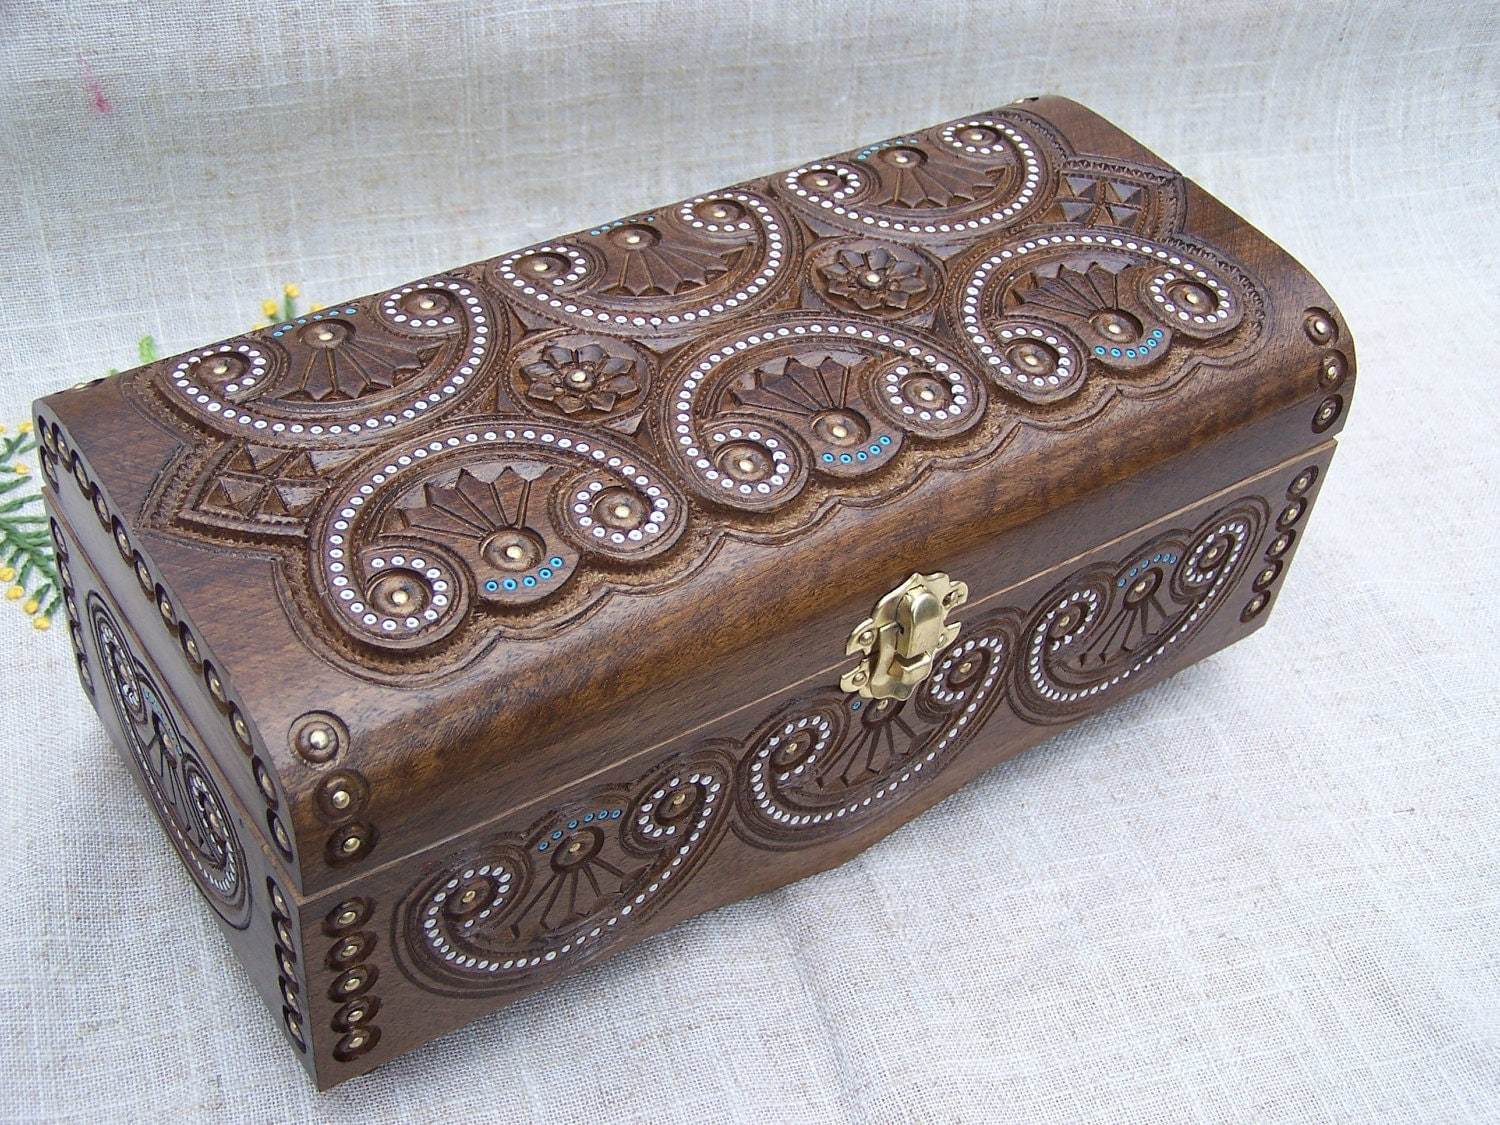 Jewelry Box Ring Box Wooden Box Wood Carving Boxes By